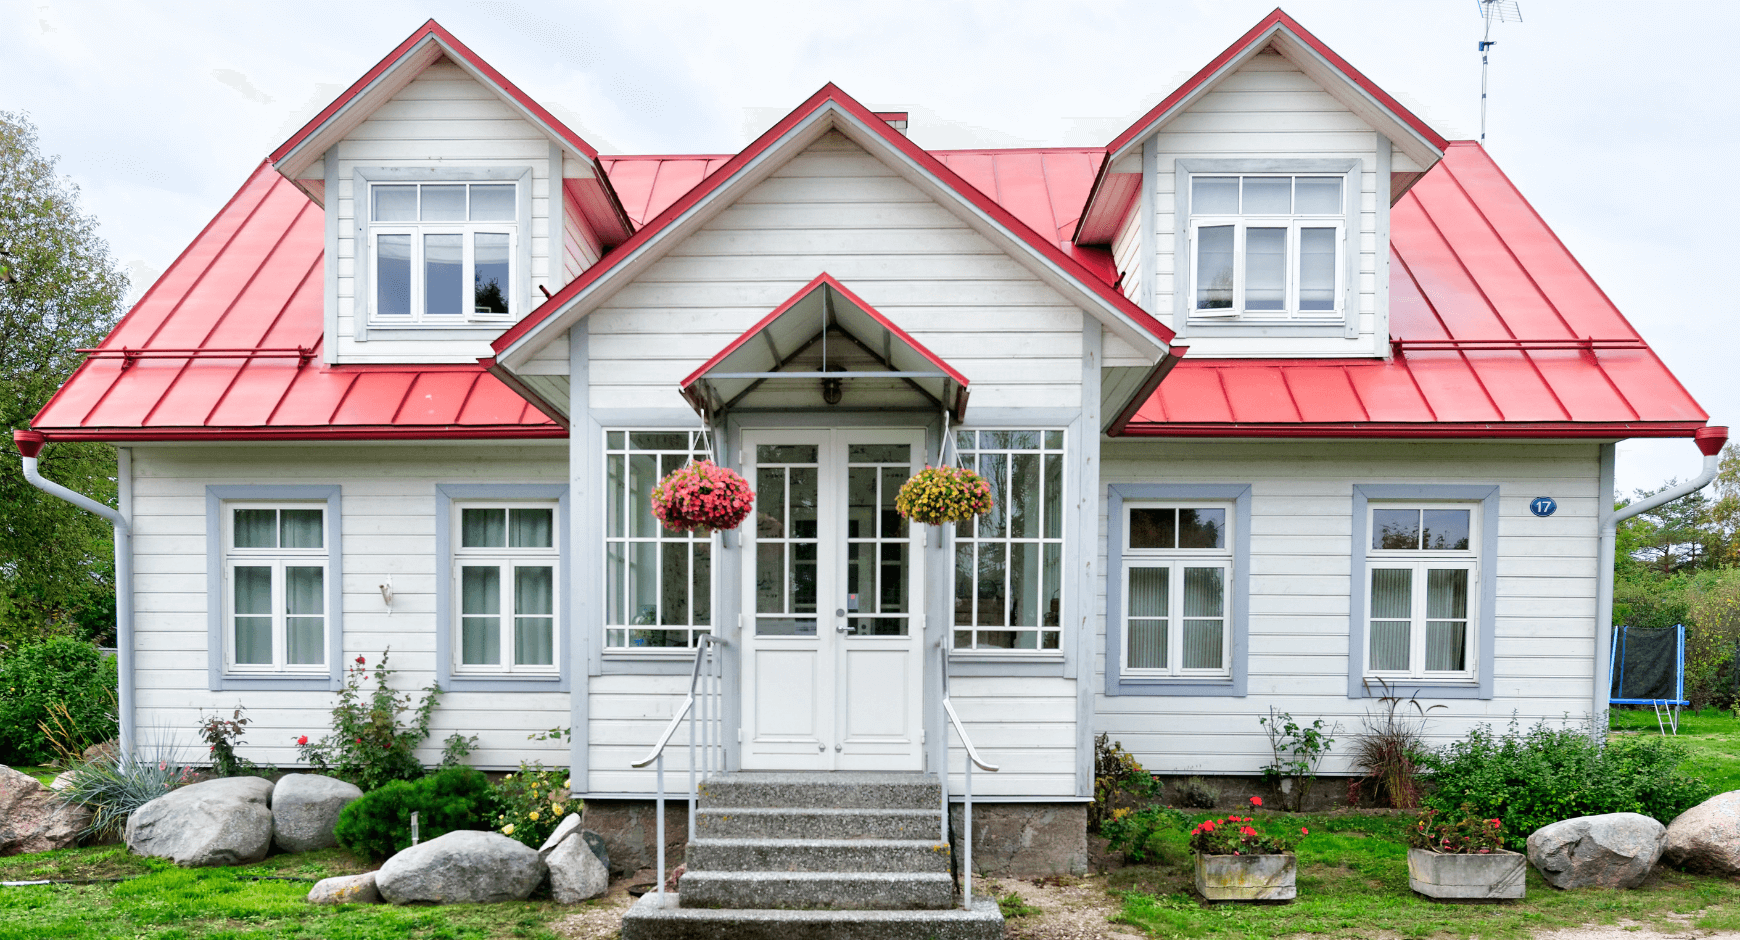 Image of a beautiful home with wood exterior window trim